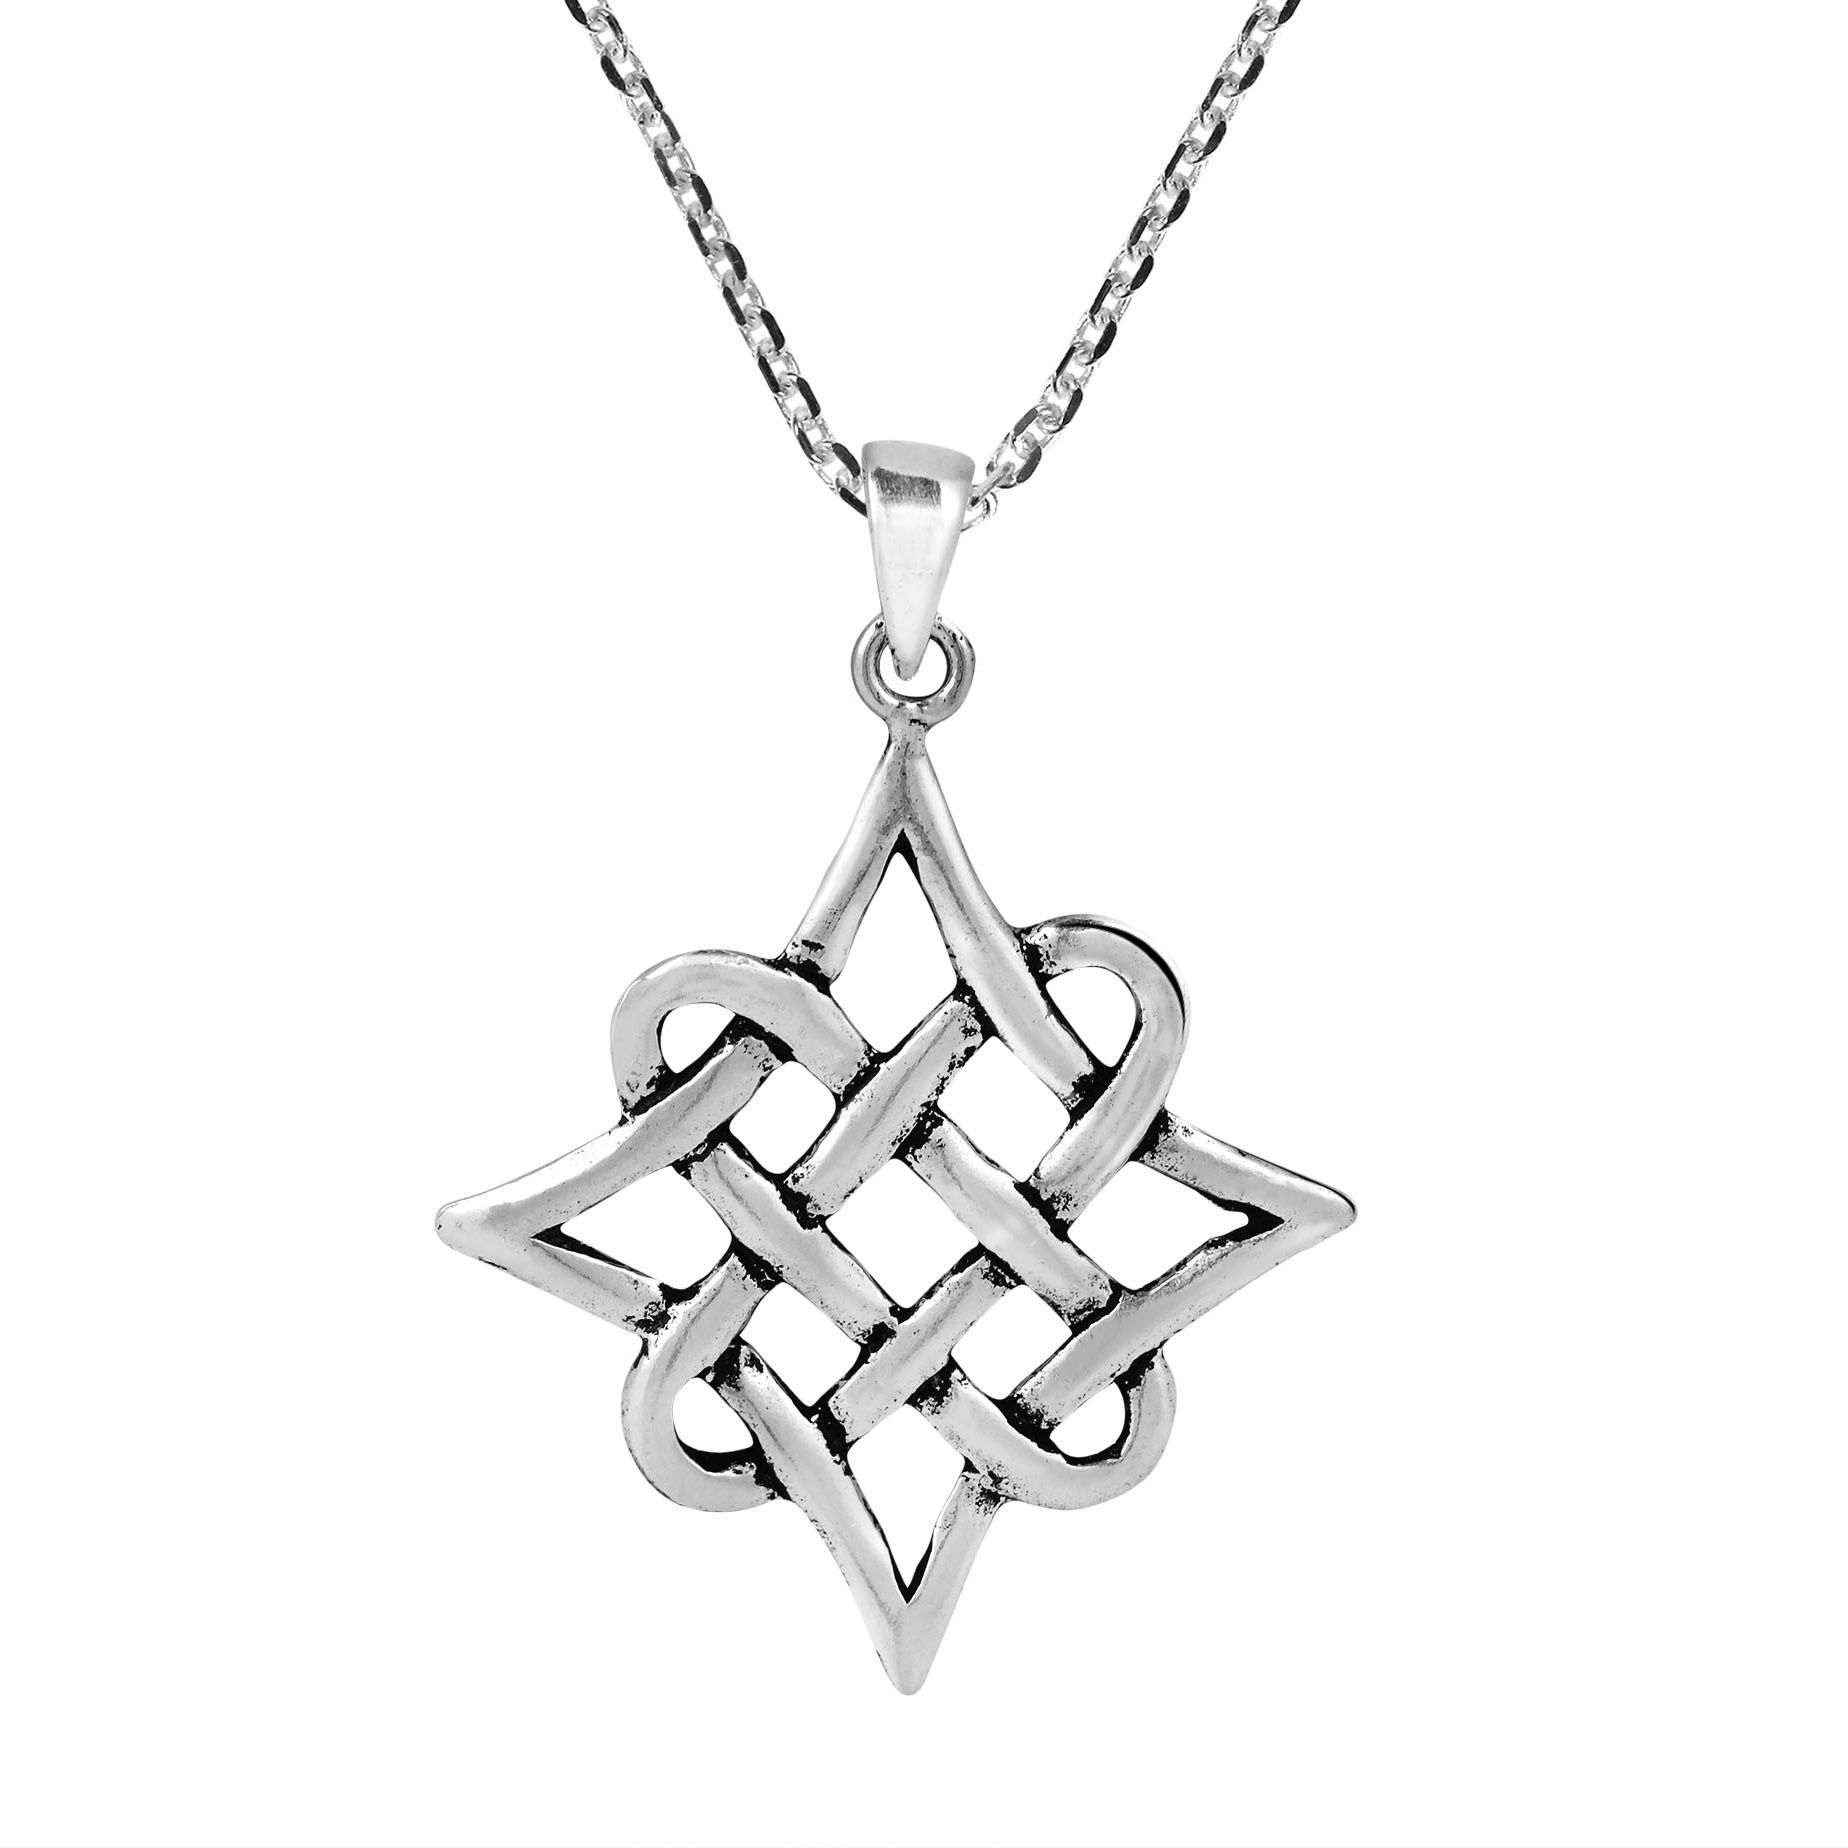 Quaternary celtic knot eternity sterling silver necklace aeravida the quaternary celtic knot embodies the design of this artisan crafted sterling silver necklace the quaternary celtic knot has four corners which could biocorpaavc